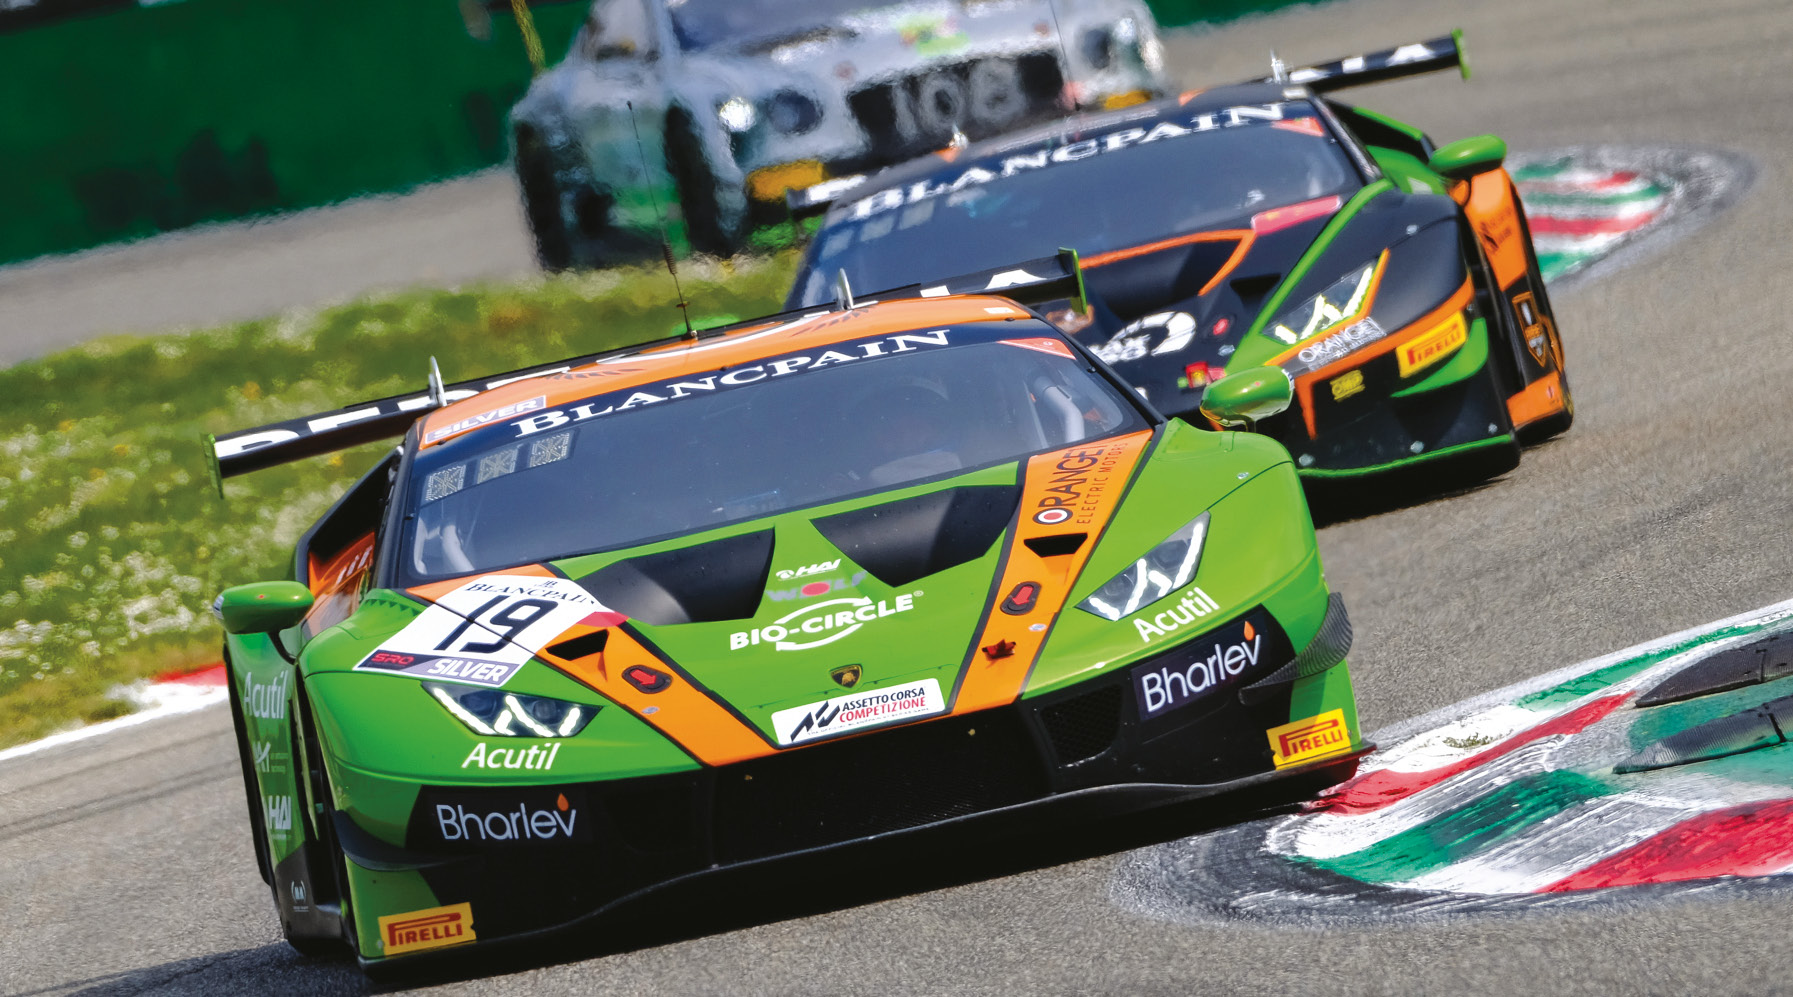 The Huracán GT3 has proven successful across all classes of the Blancpain GT Series, Pro, Silver and Am